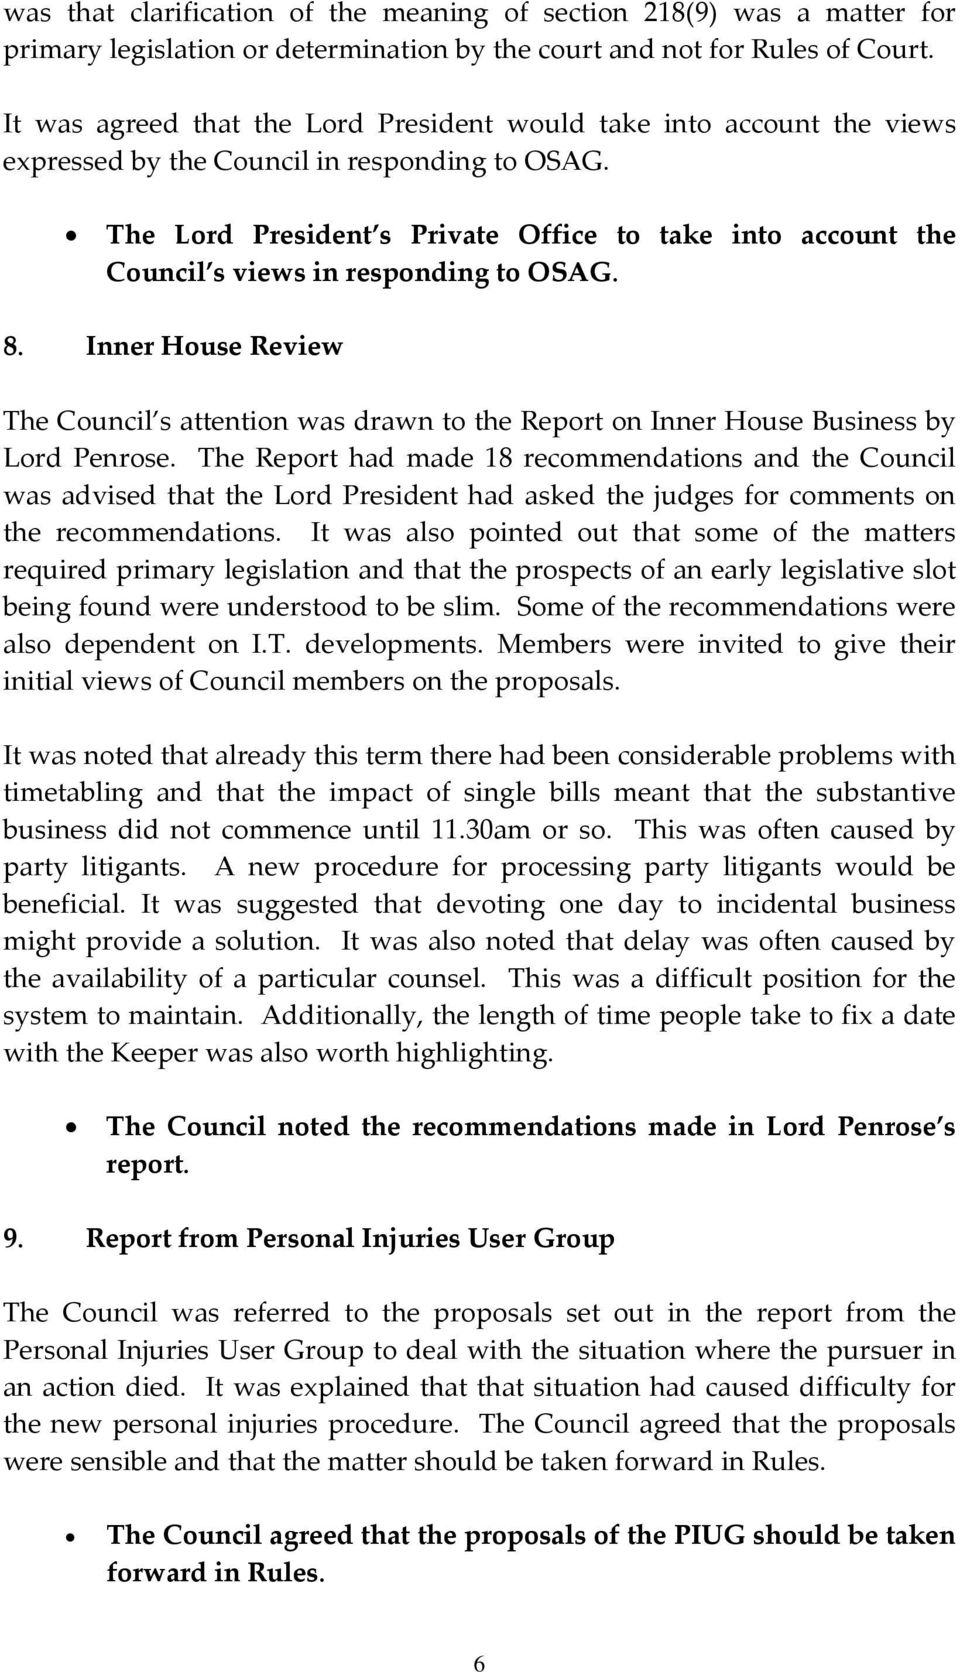 The Lord President s Private Office to take into account the Council s views in responding to OSAG. 8.